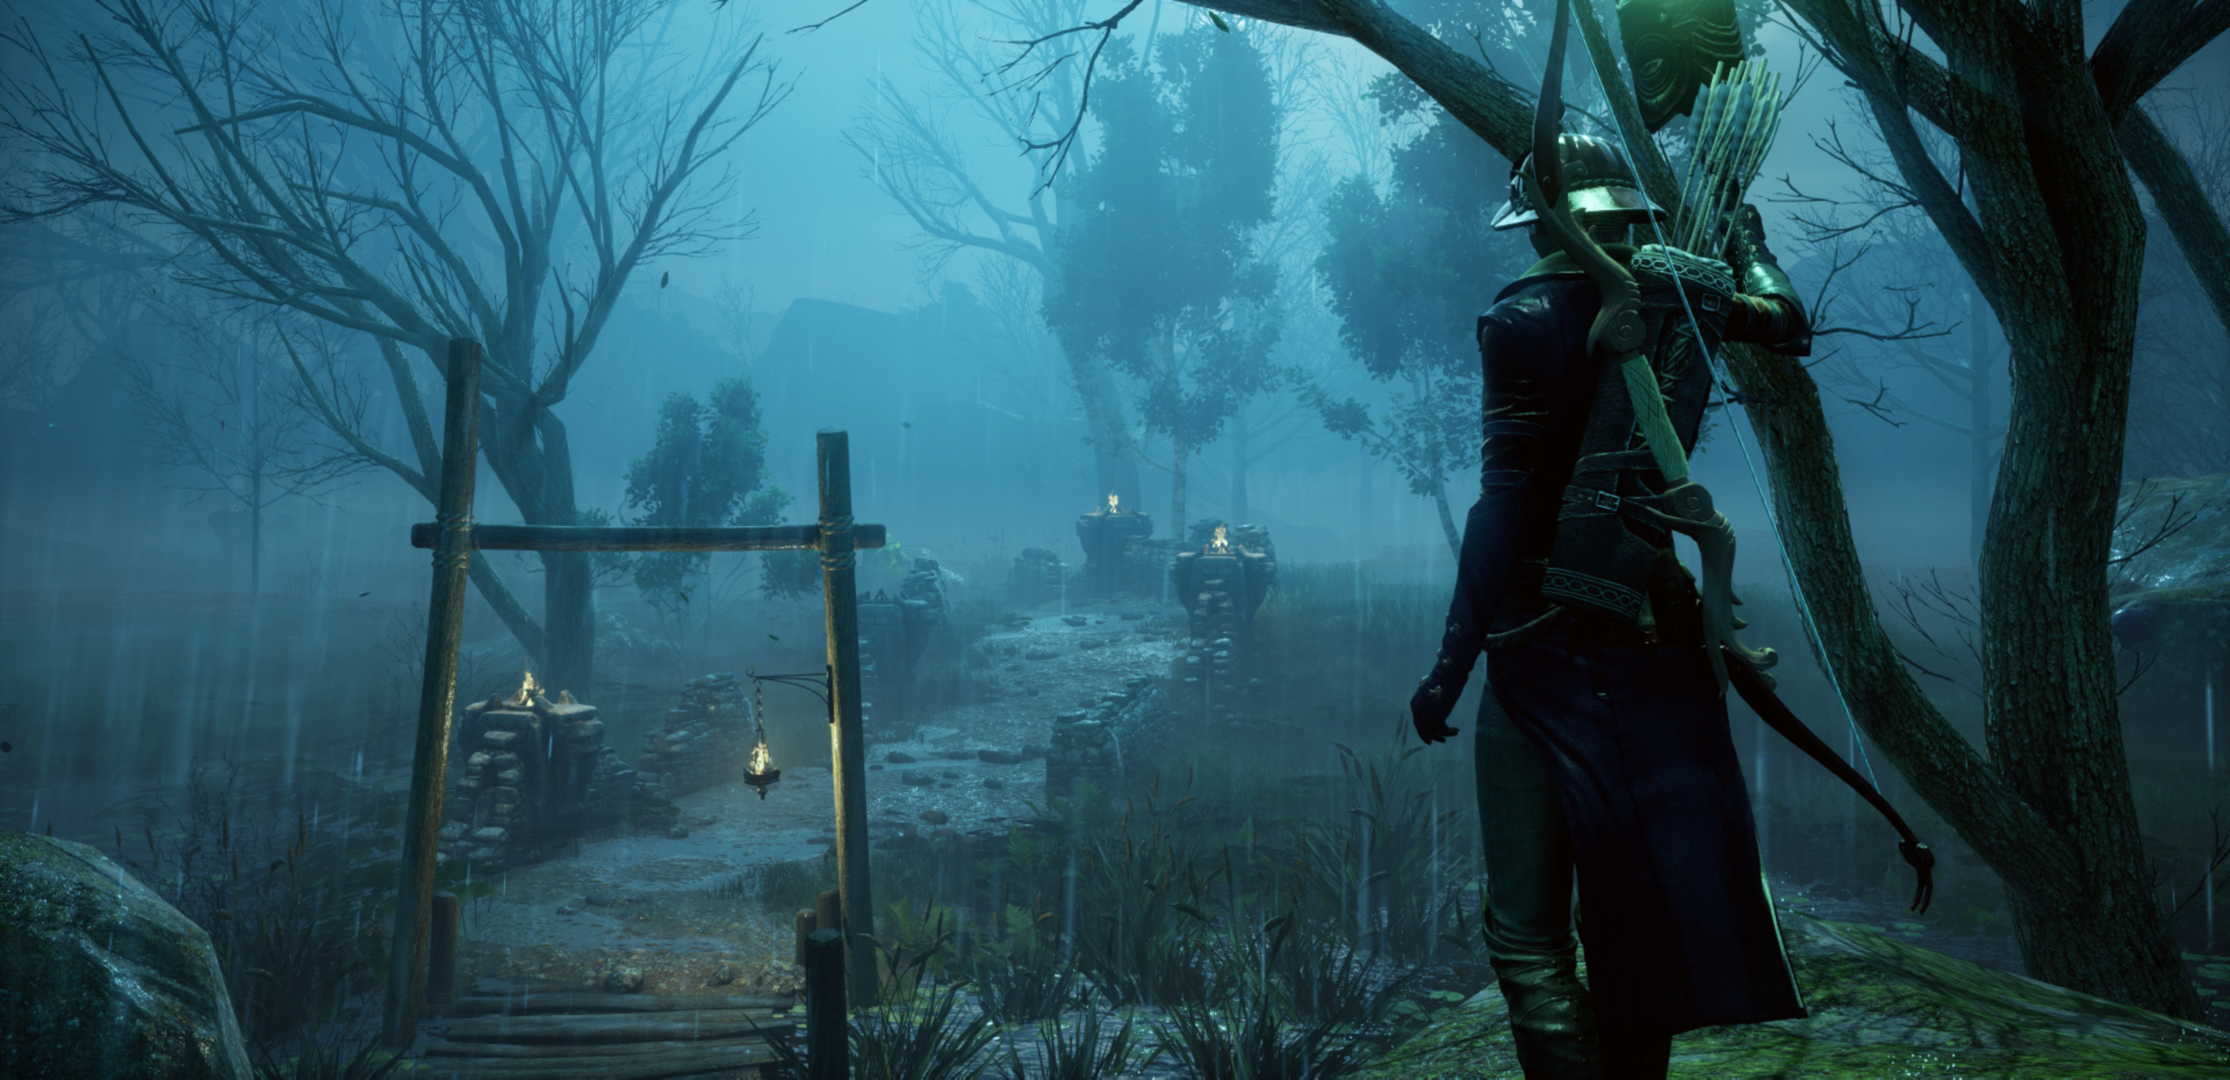 Dragon Age: Inquisition review: by faith alone